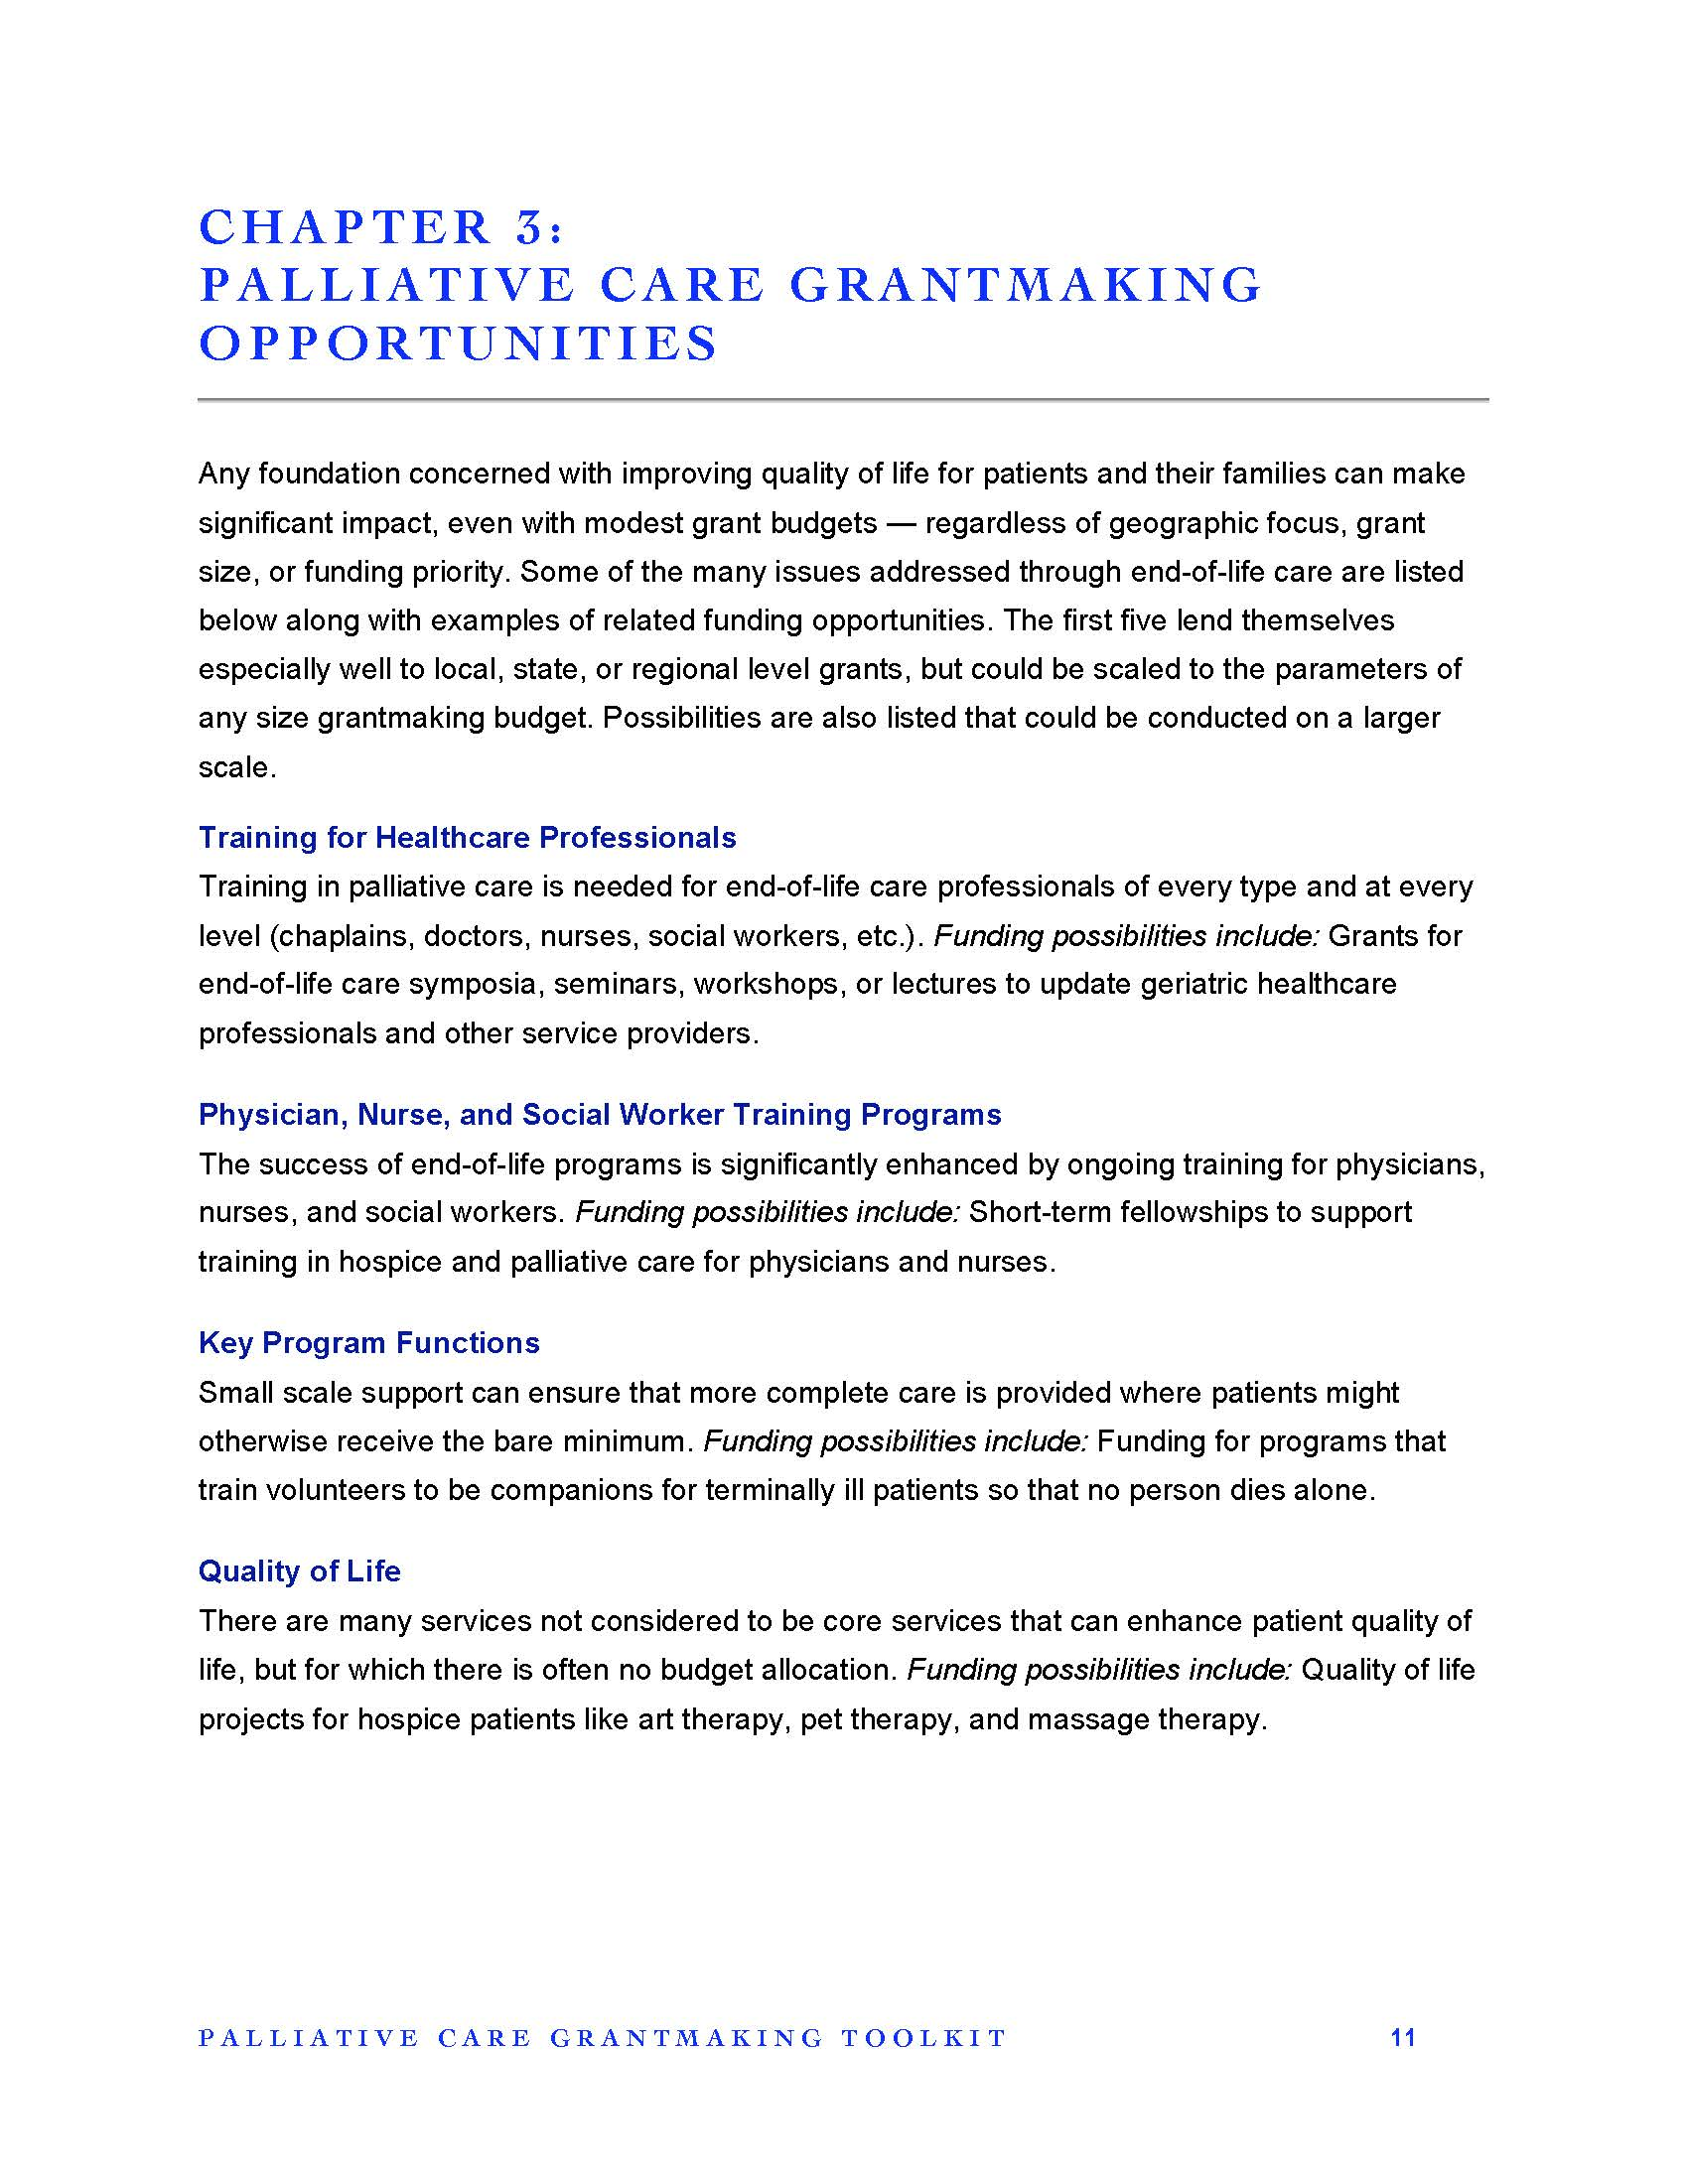 Palliative Care Grantmaking Toolkit_Page_12.jpg